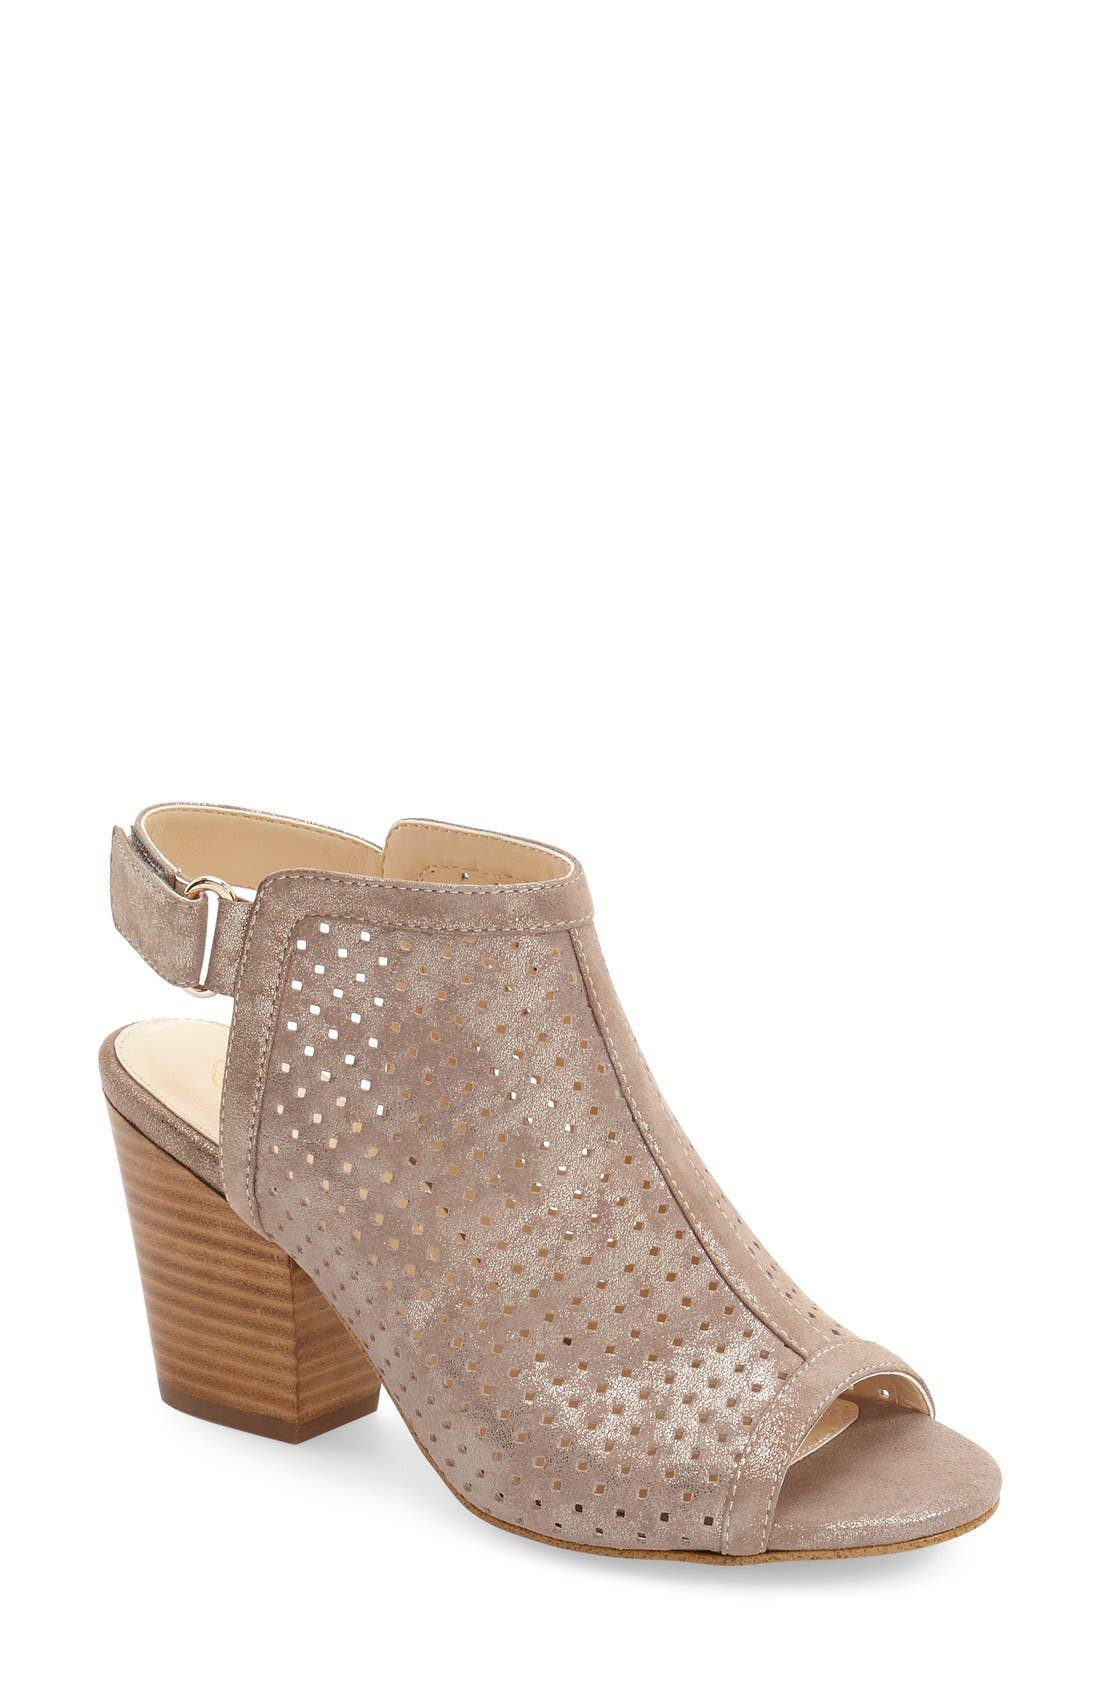 ,                             'Lora' Perforated Open-Toe Bootie Sandal,                             Main thumbnail 1, color,                             040